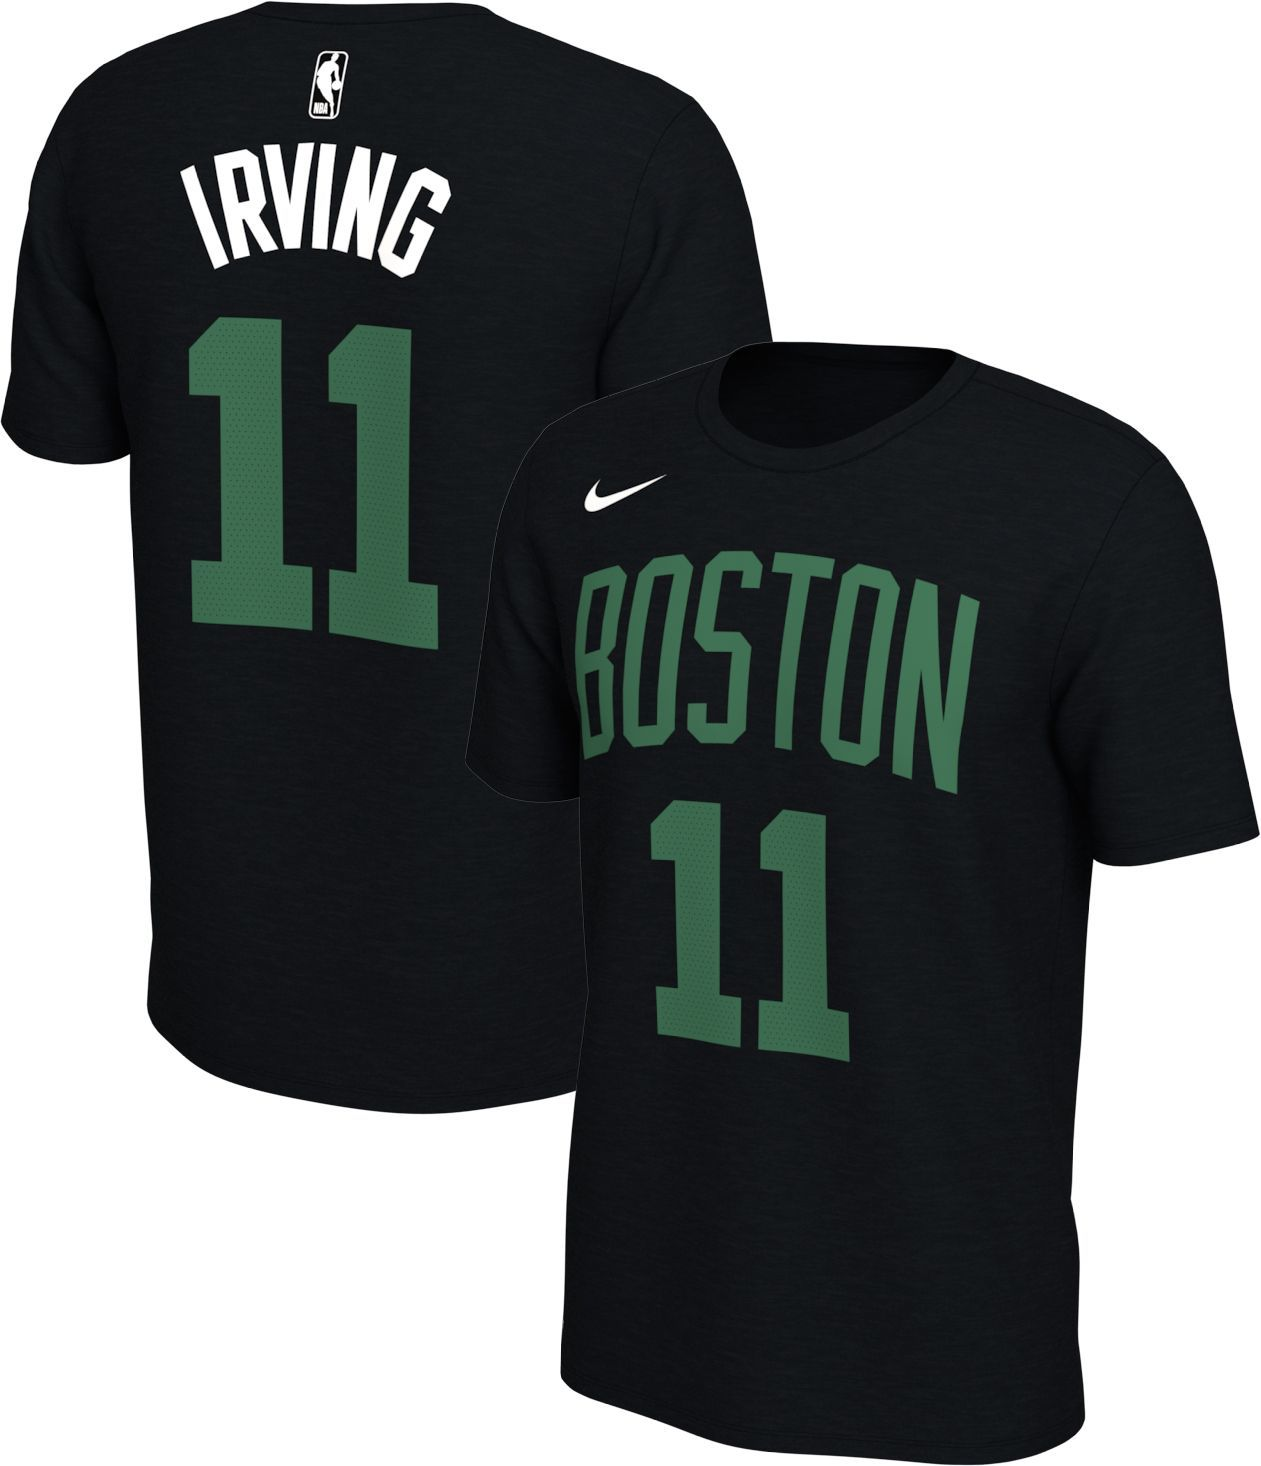 7eb421d503e Nike Men s Boston Celtics Kyrie Irving  11 Dri-FIT Black T-Shirt in ...